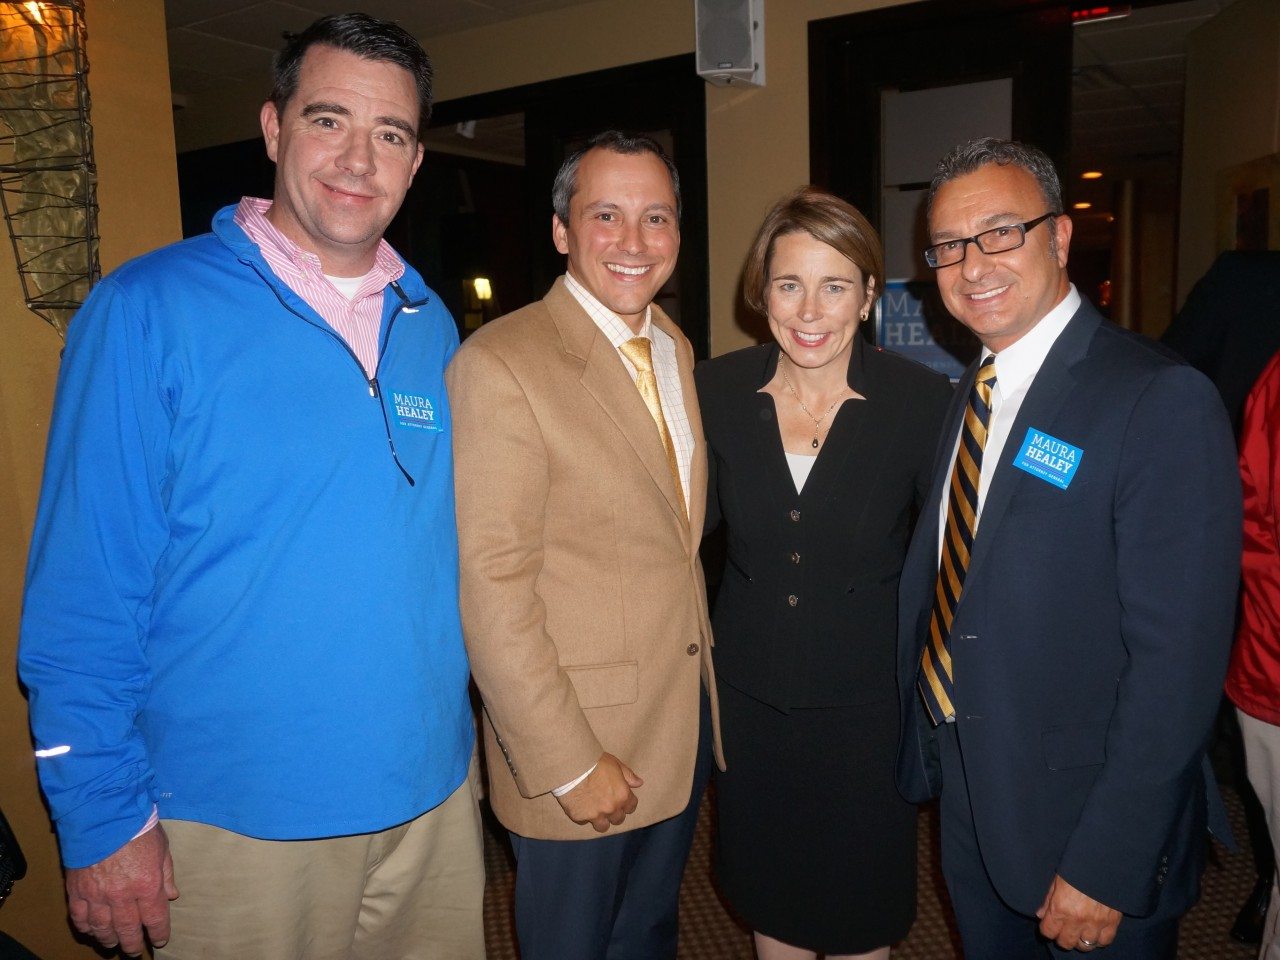 State Rep. Dan Ryan, State Rep. Aaron Michlewitz, Attorney General Candidate Maura Healey, Boston City Coucilor Sal LaMattina.